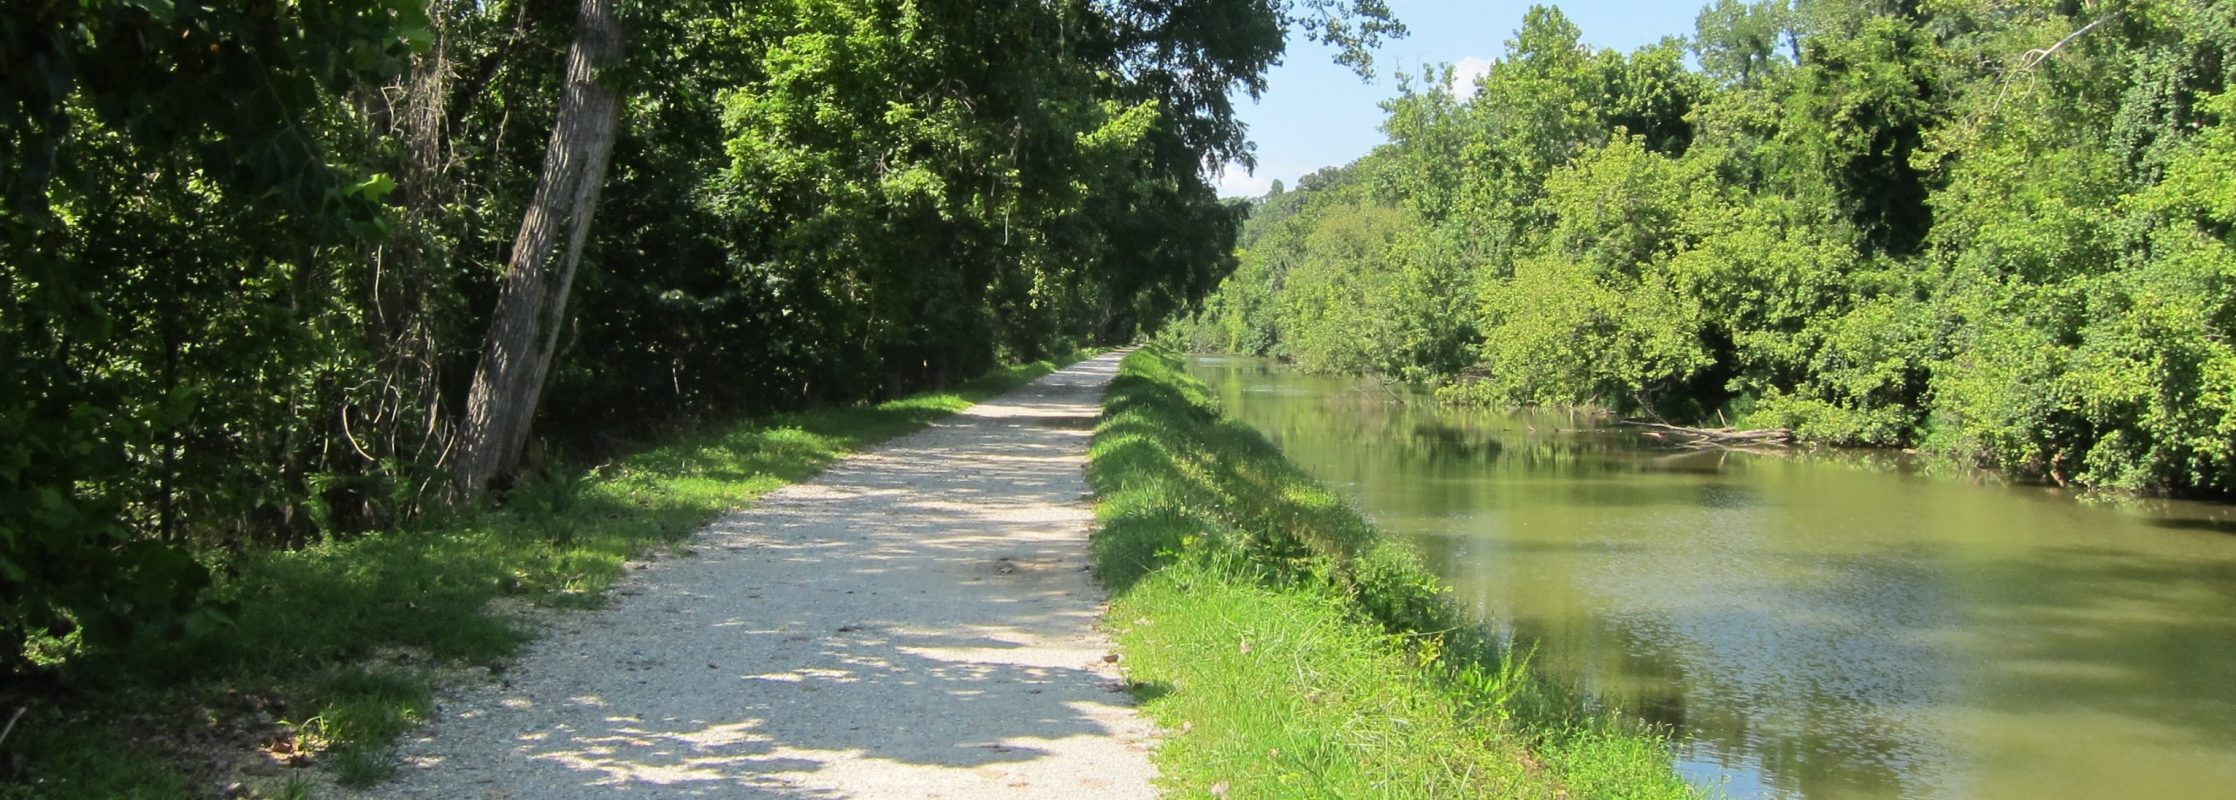 The C&O Towpath and Canal Looking West